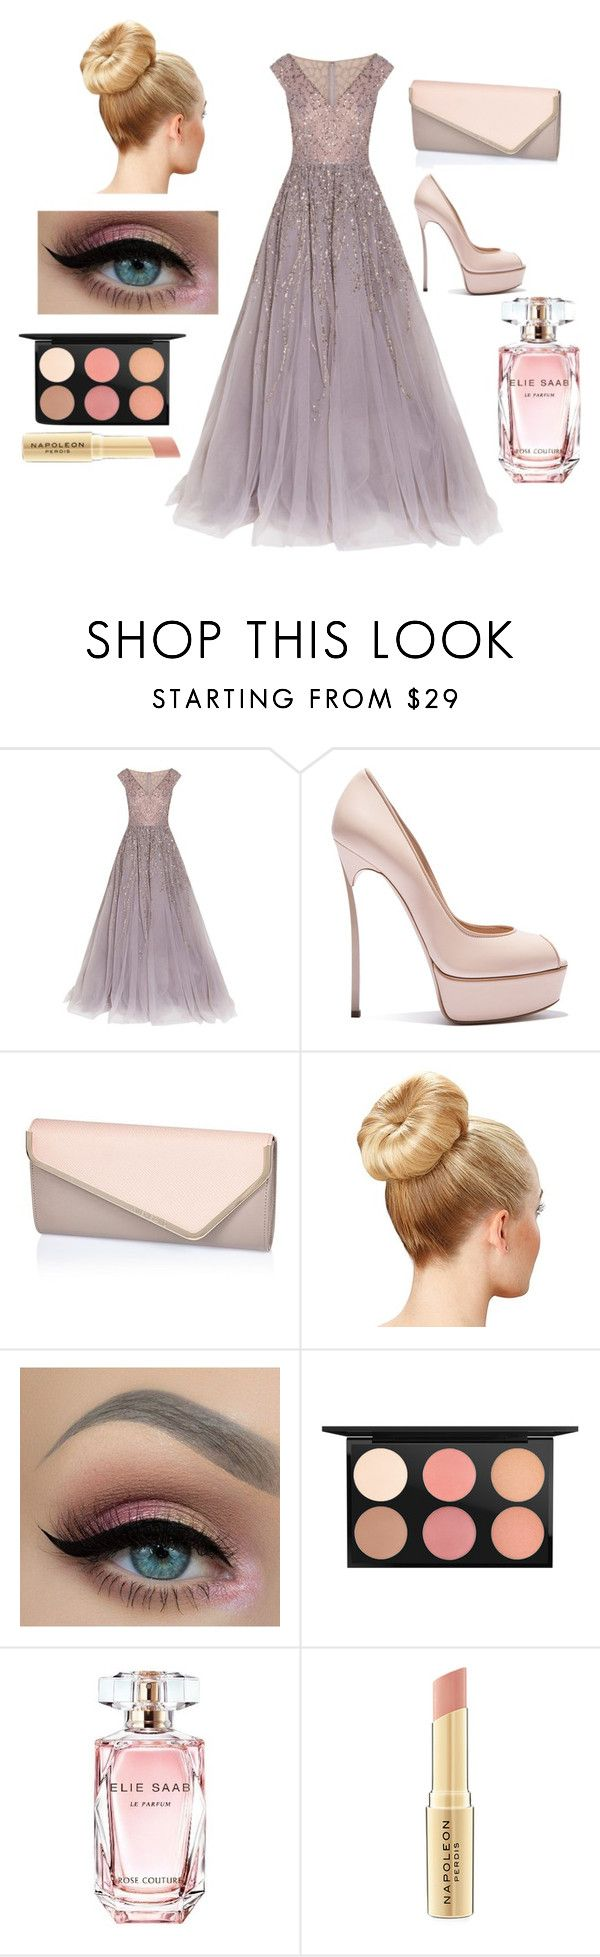 """Ballo di fine anno"" by lovelydarkangel ❤ liked on Polyvore featuring mode, Georges Hobeika, Casadei, River Island, MAC Cosmetics, Elie Saab et Napoleon Perdis"